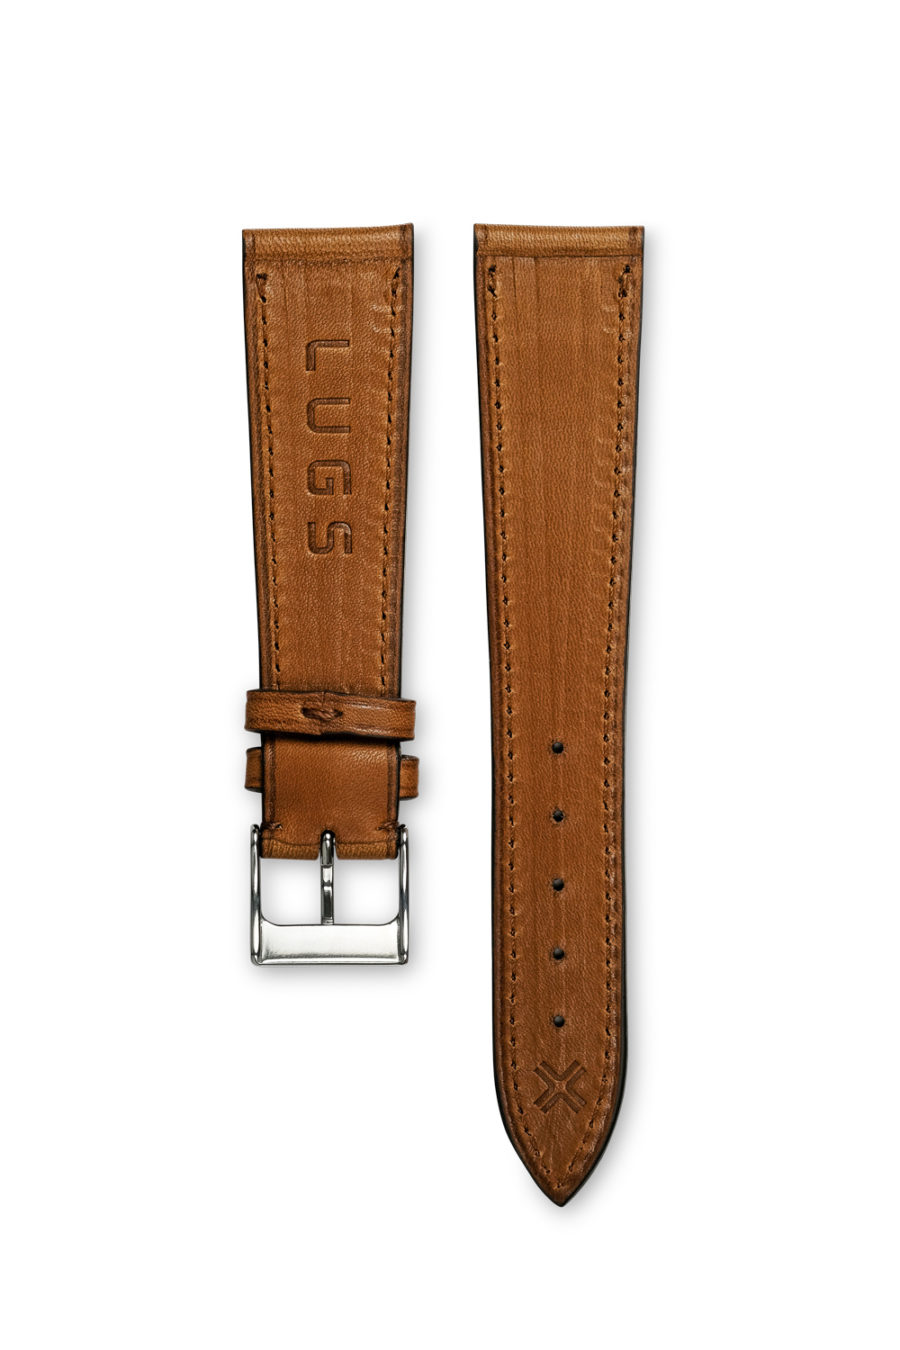 Smooth Classic Barenia light brown tan leather watch strap - tone on tone stitching - LUGS brand